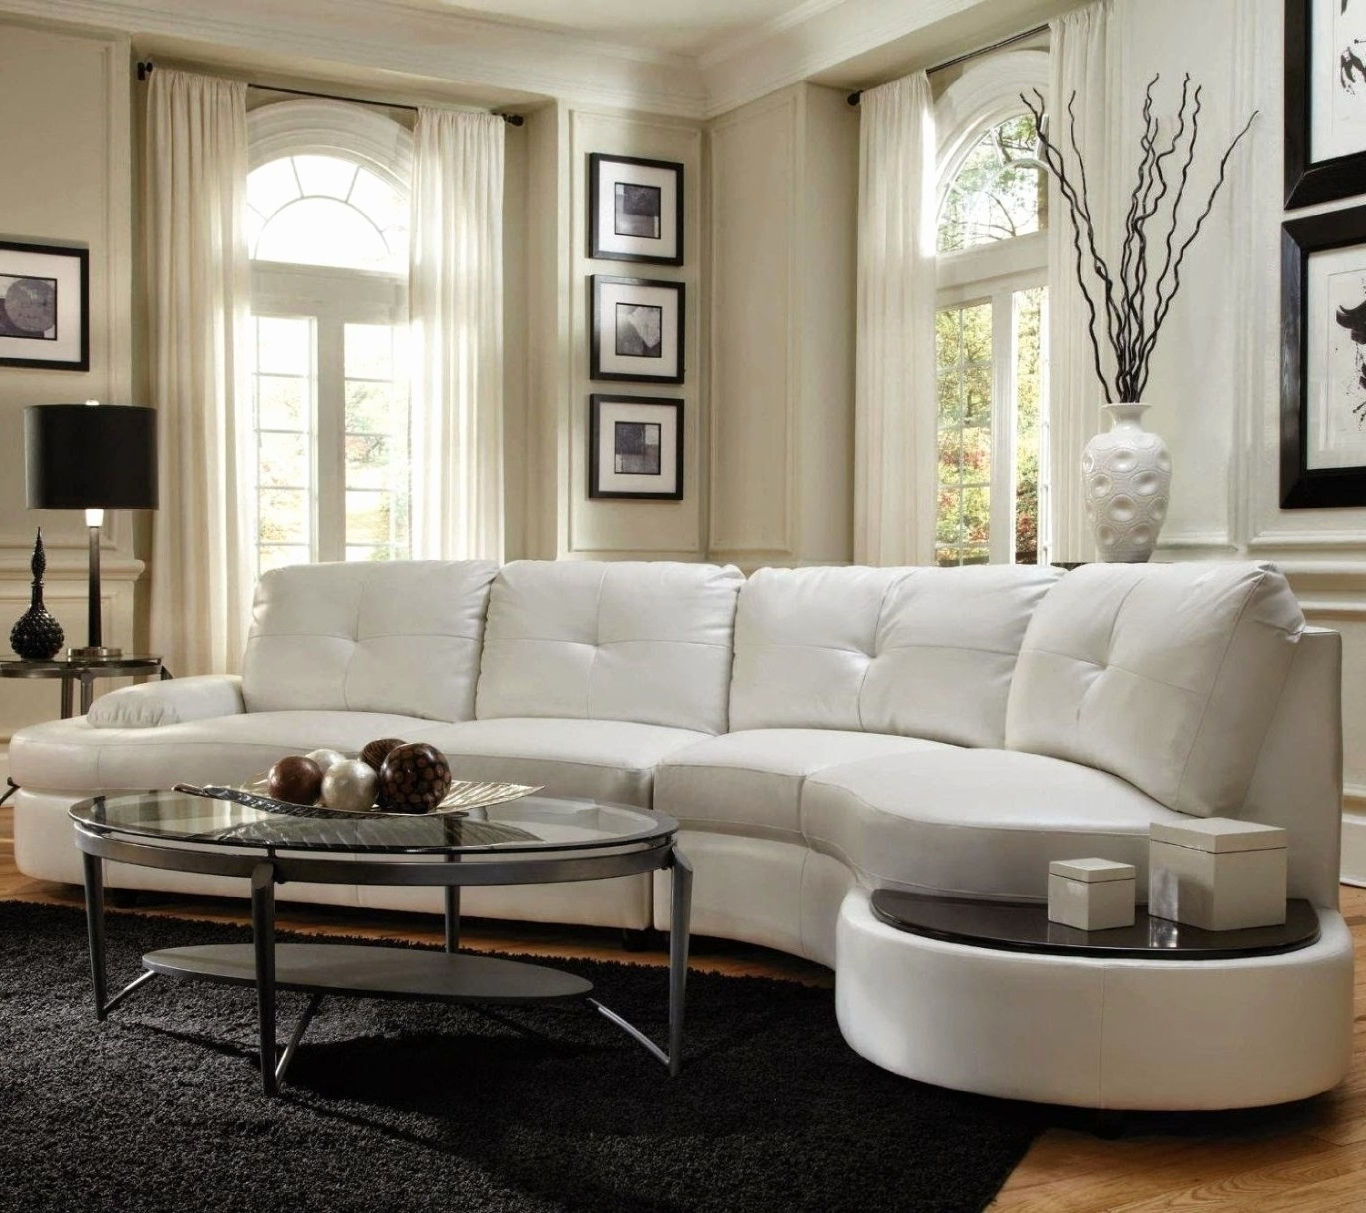 Furniture Row Sectionals In Well Known Furniture Row Sectional Sofas (View 2 of 15)